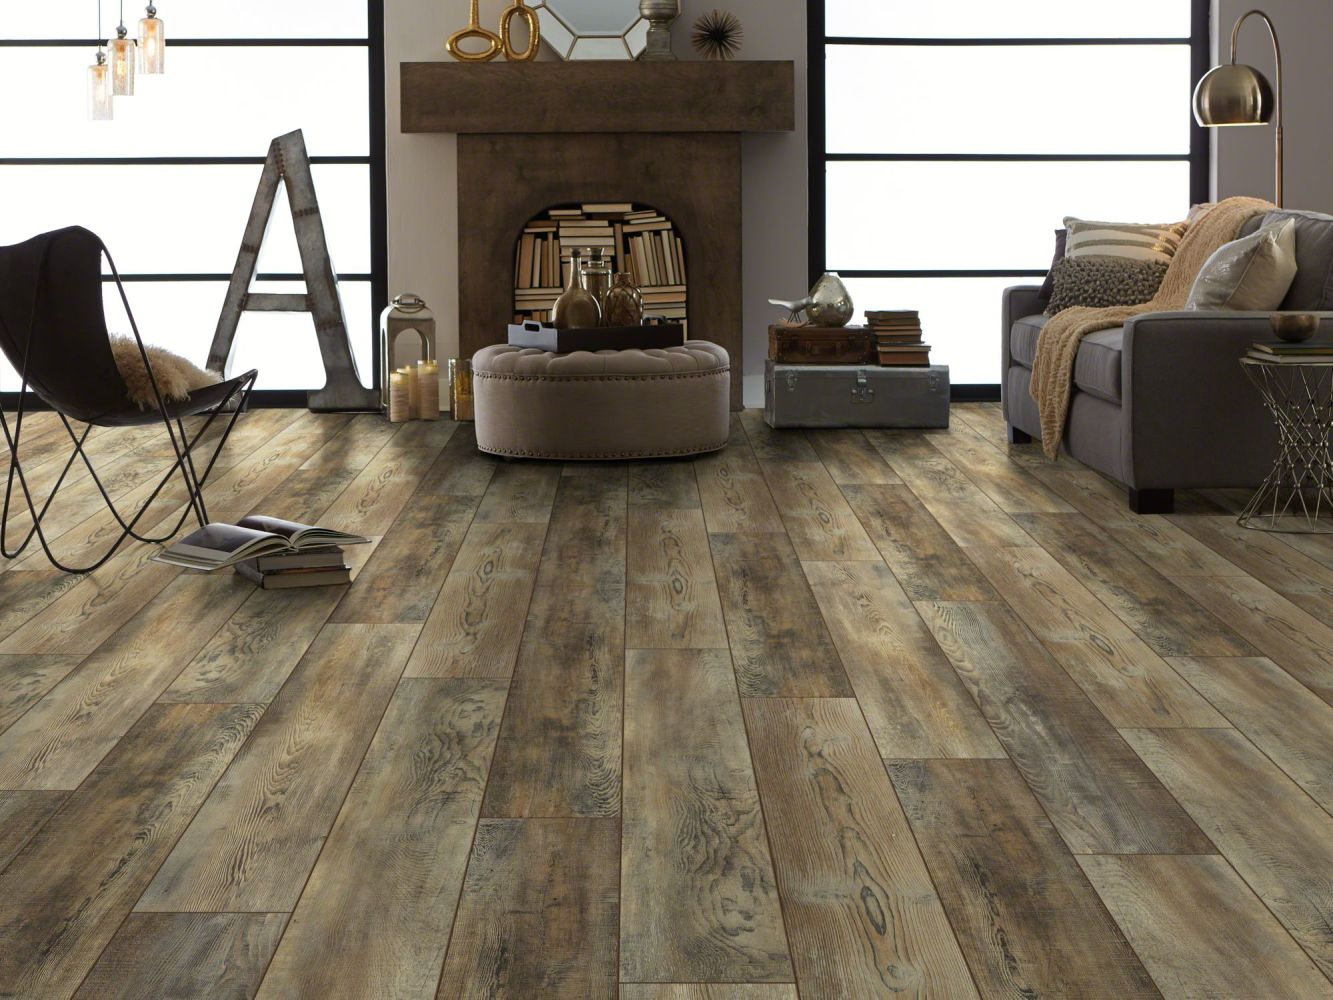 Shaw Floors Resilient Residential Mojave HD Plus Saggio 00159_0461V